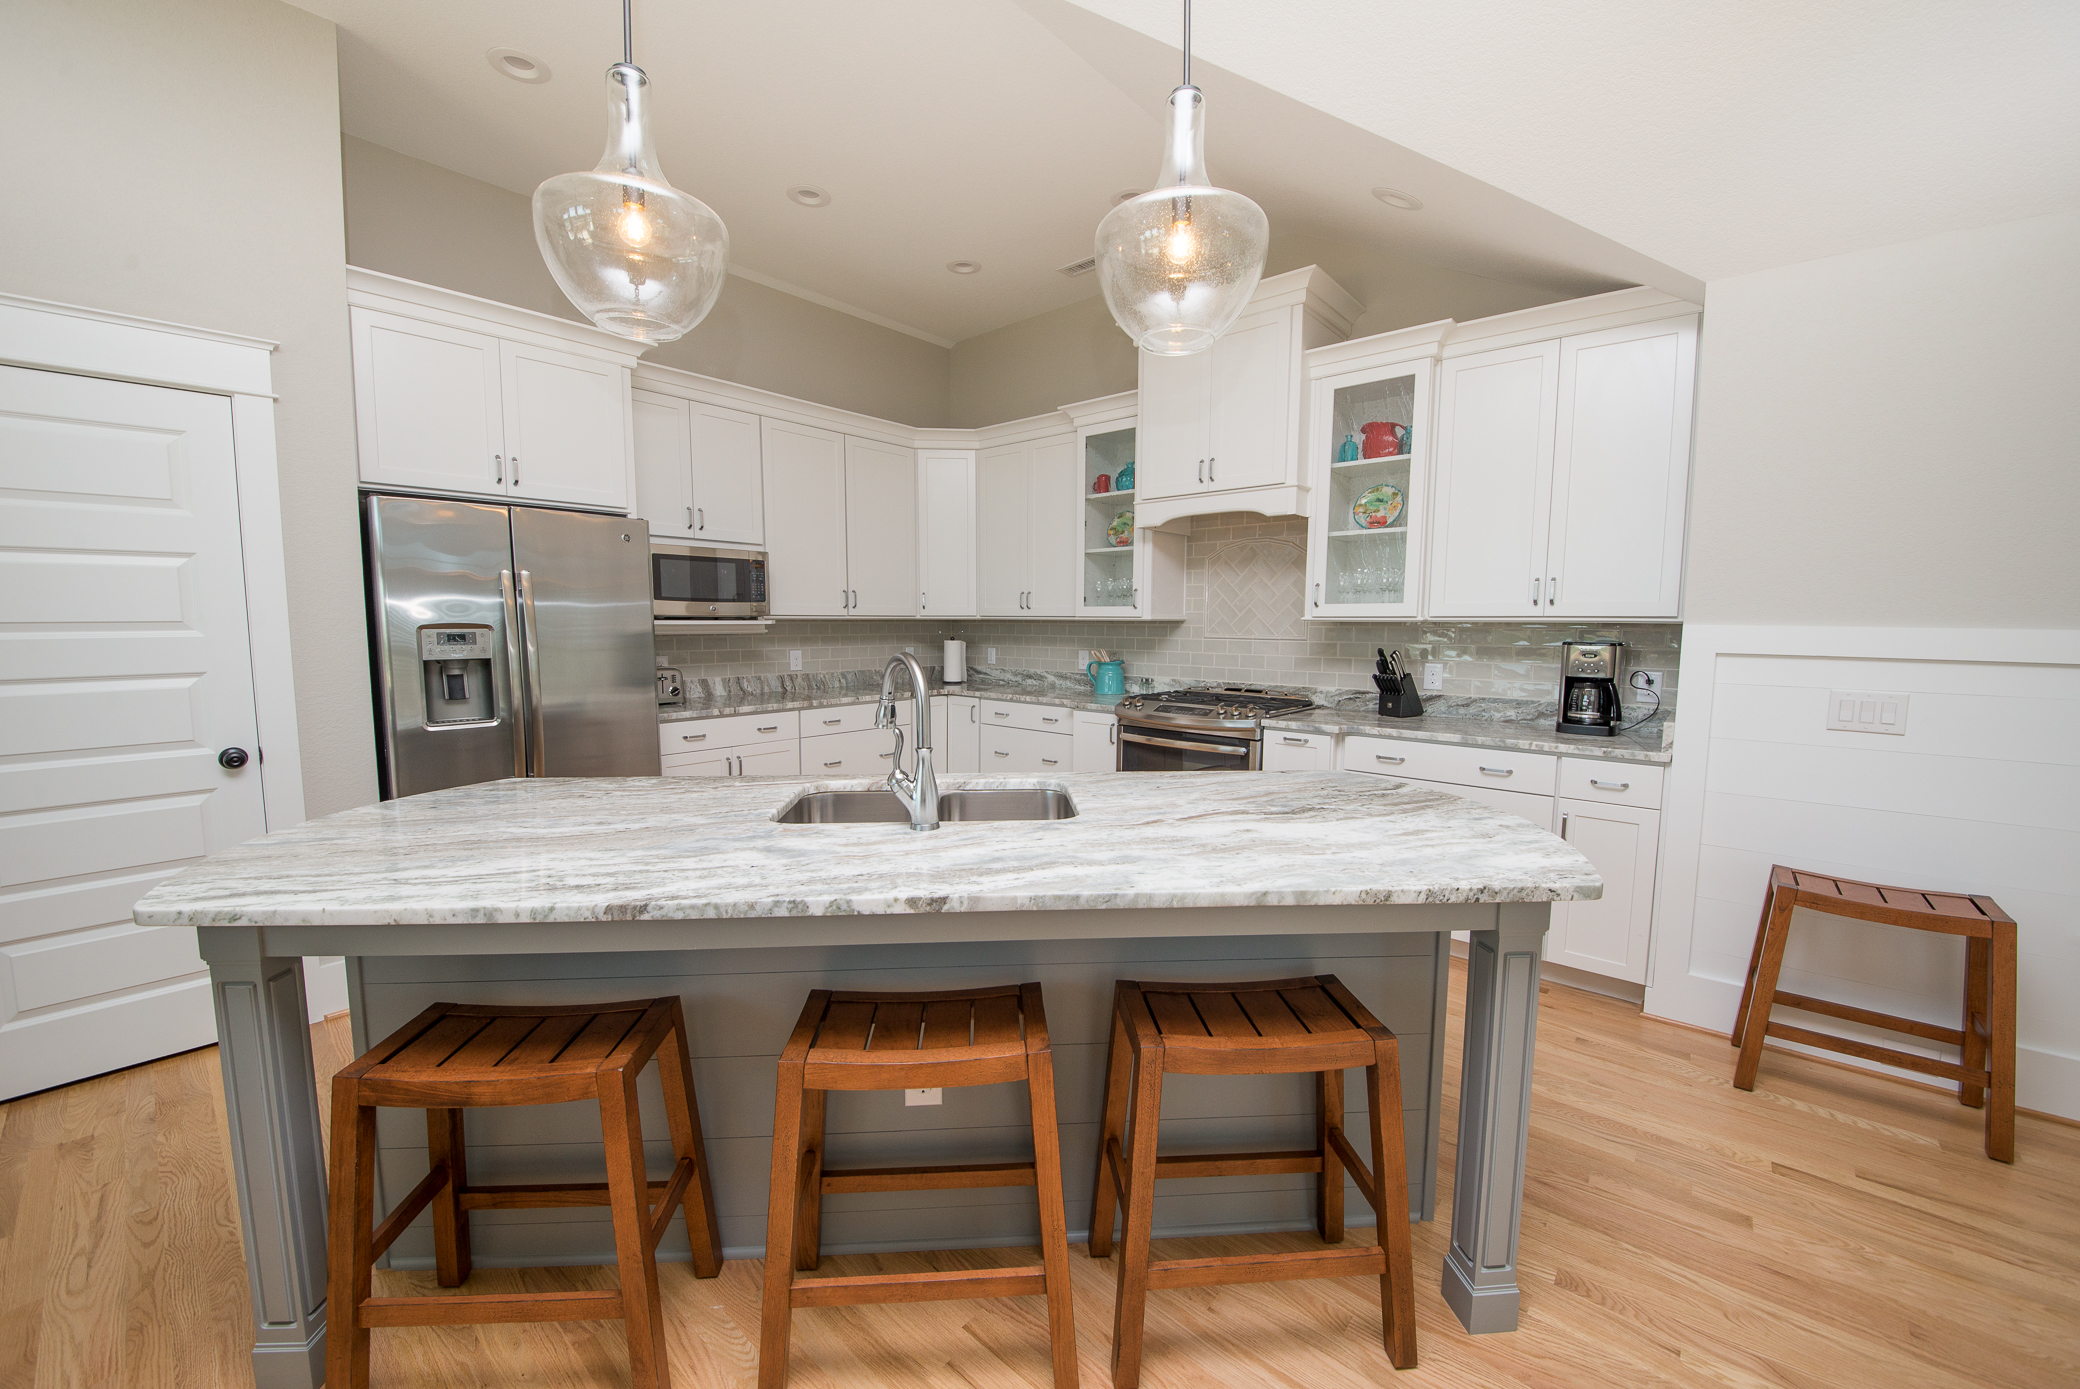 Stainless steel appliances, center island and granite countertops